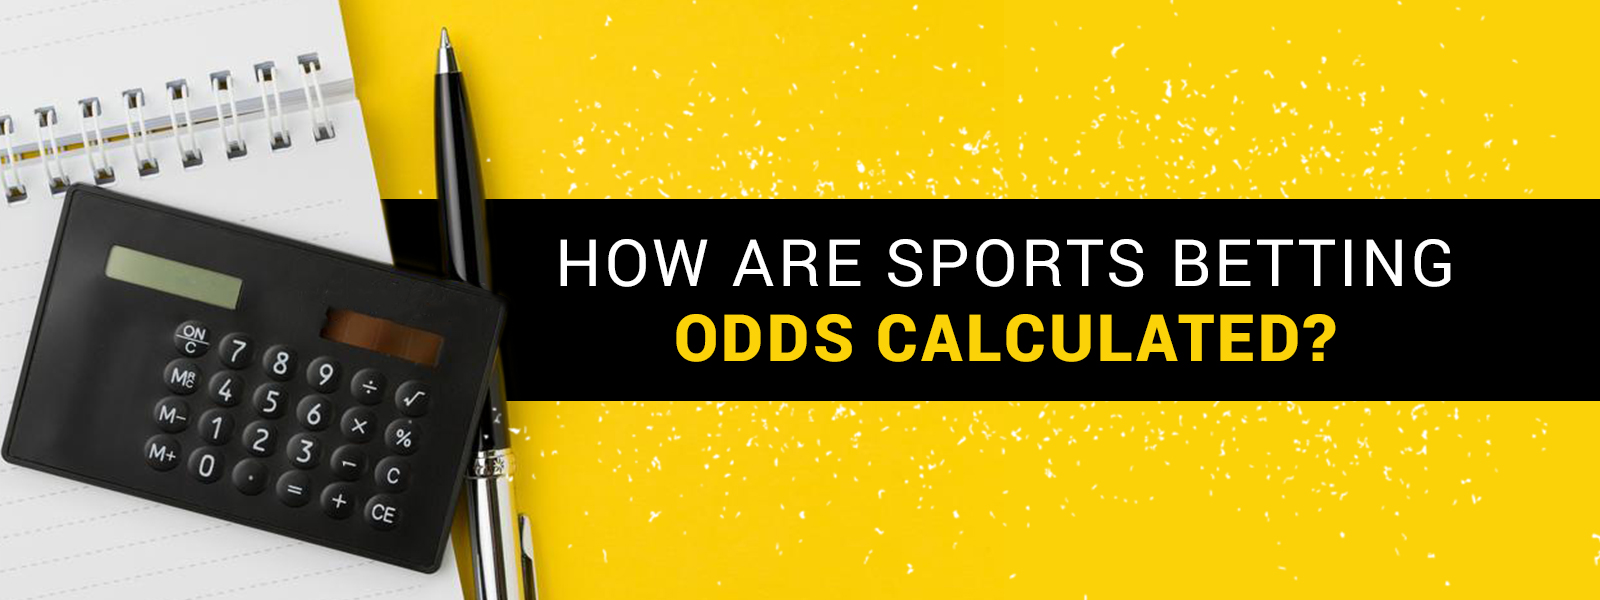 How are sports betting odds calculated?